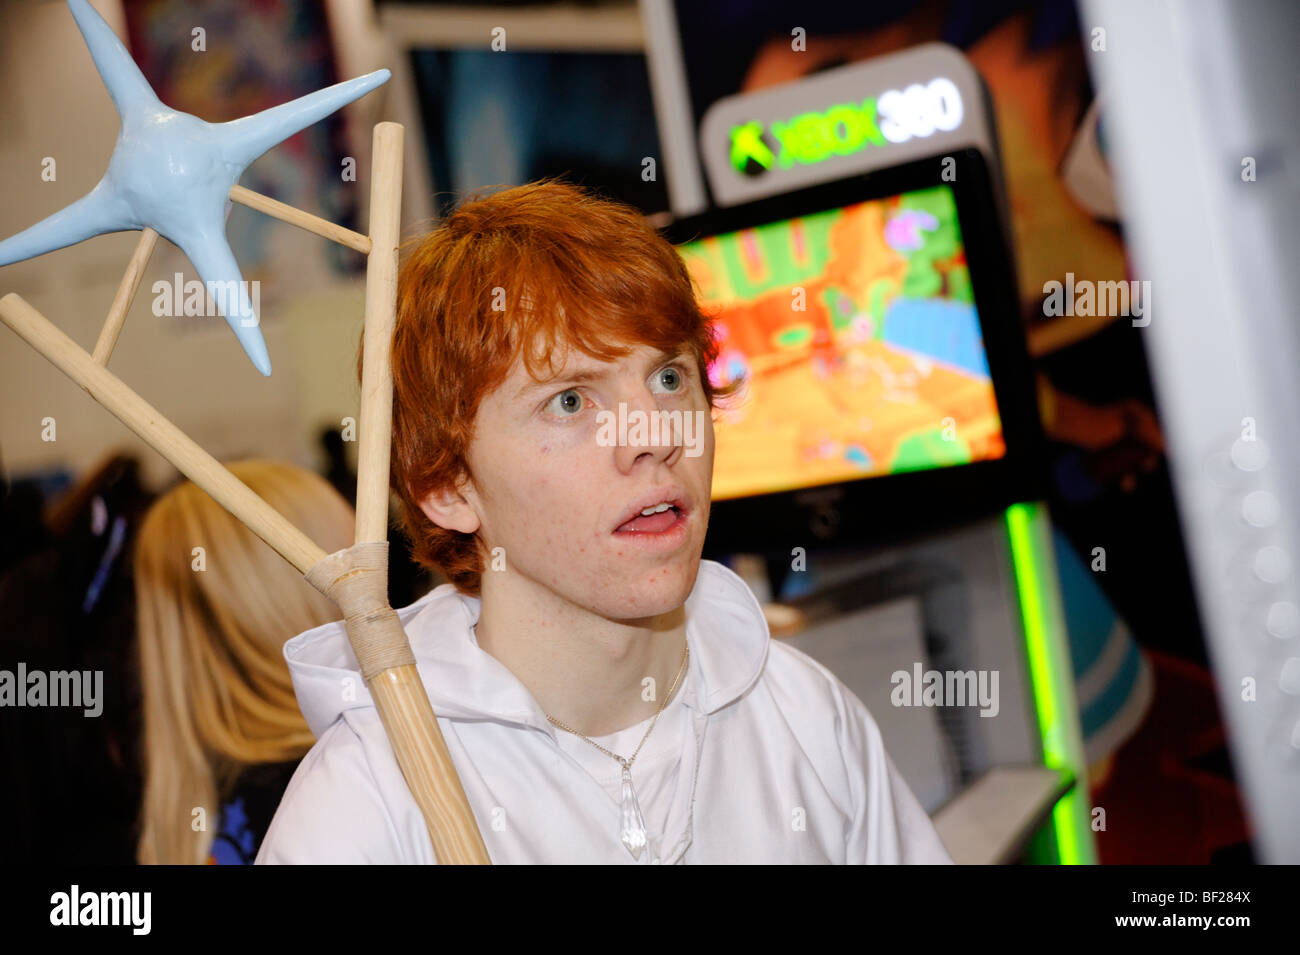 Fan playing video games at the London MCM expo. Britain 2009. - Stock Image